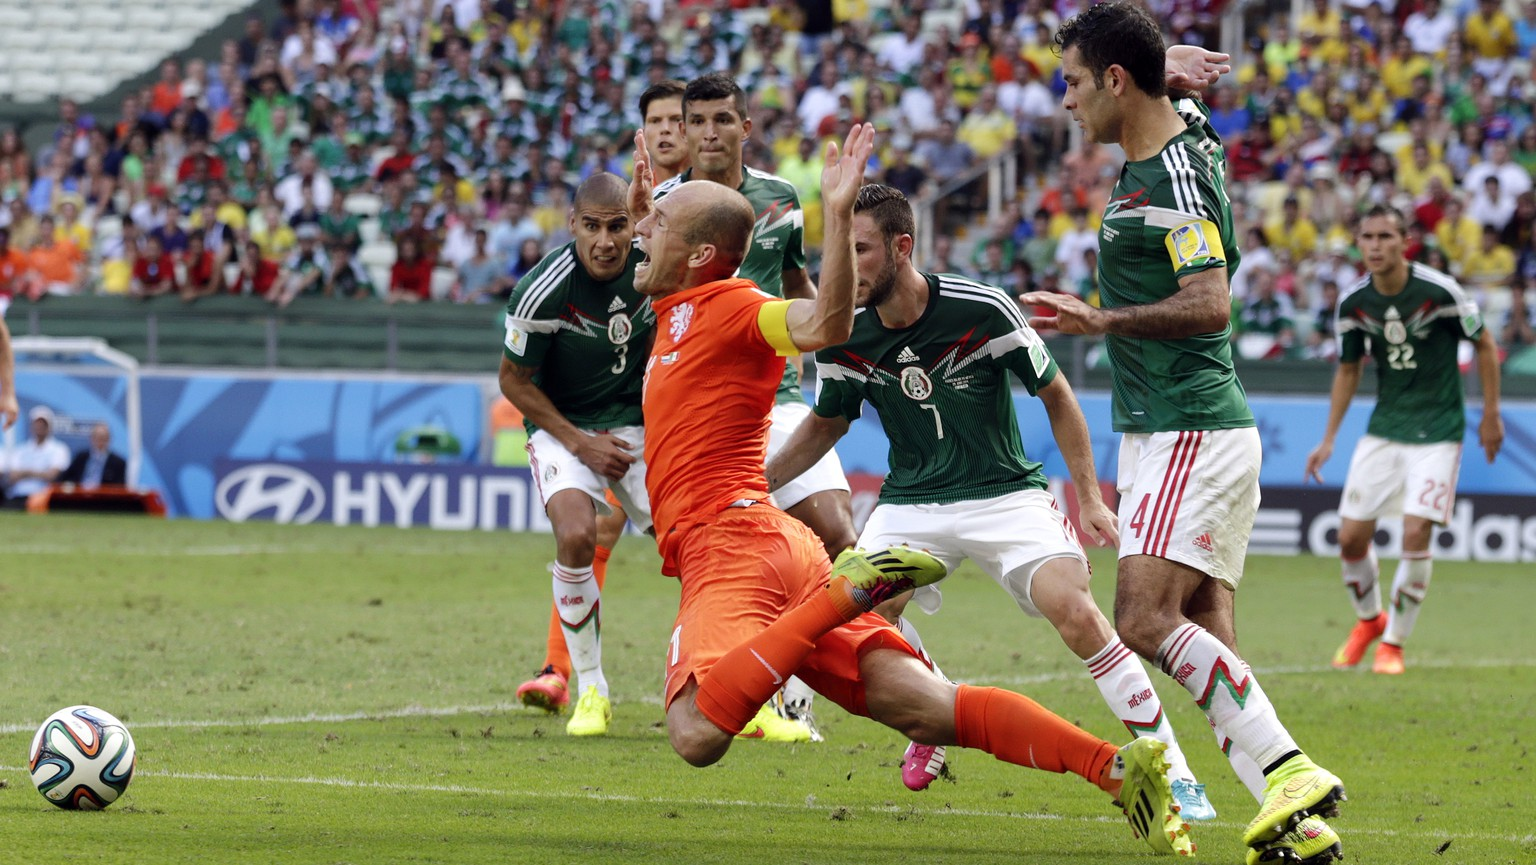 AP10ThingsToSee - Netherlands' Arjen Robben, center, goes down to win a penalty during the World Cup round of 16 soccer match between the Netherlands and Mexico at the Arena Castelao in Fortaleza, Brazil, Sunday, June 29, 2014. Netherlands won the match 2-1. (AP Photo/Wong Maye-E)